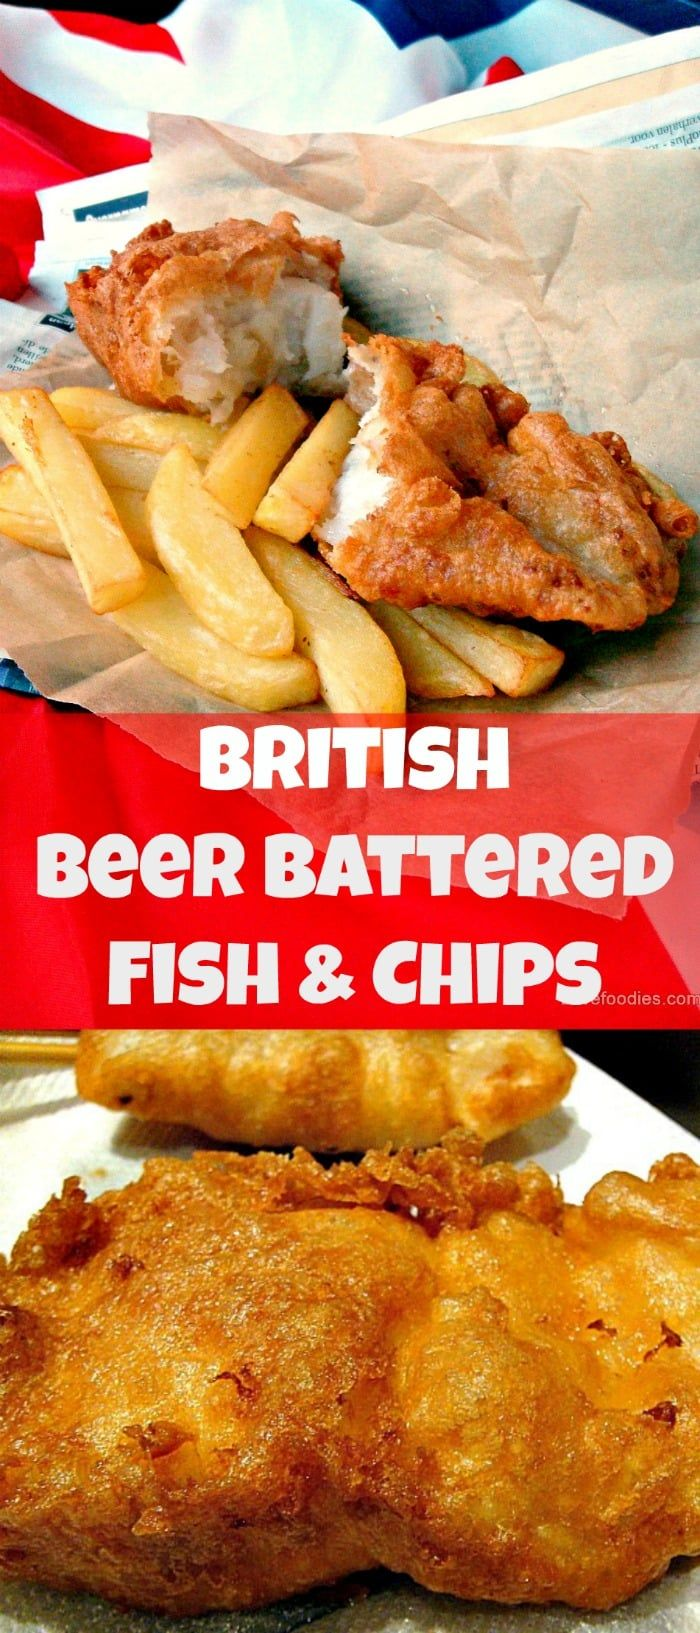 The BEST EVER Beer Battered Fish and Chips! Great flavours and don't forget your shake of vinegar and sprinkle of salt! | Lovefoodies.com